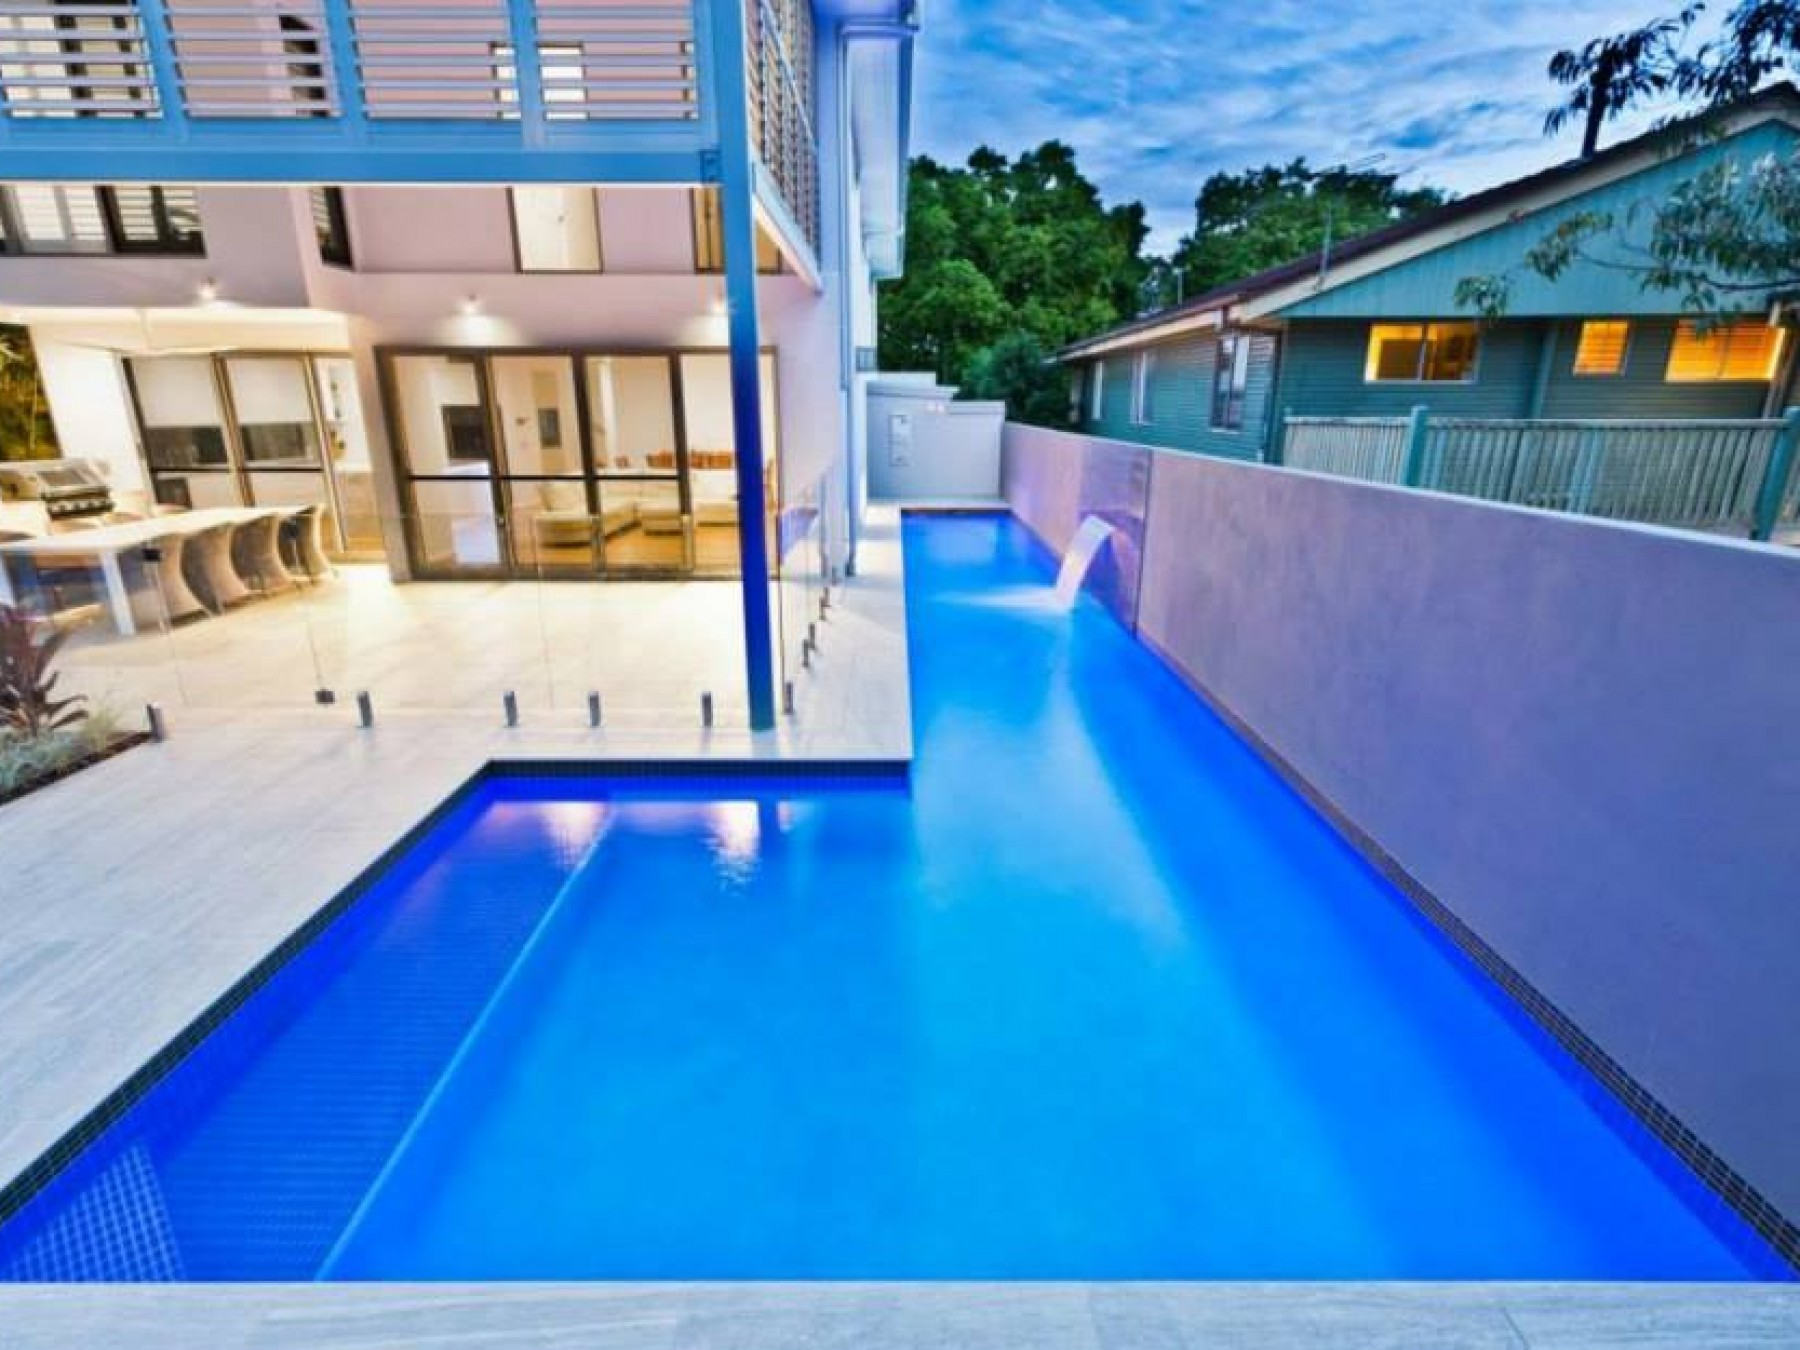 Selling or Leasing a pool in Coopers Plains